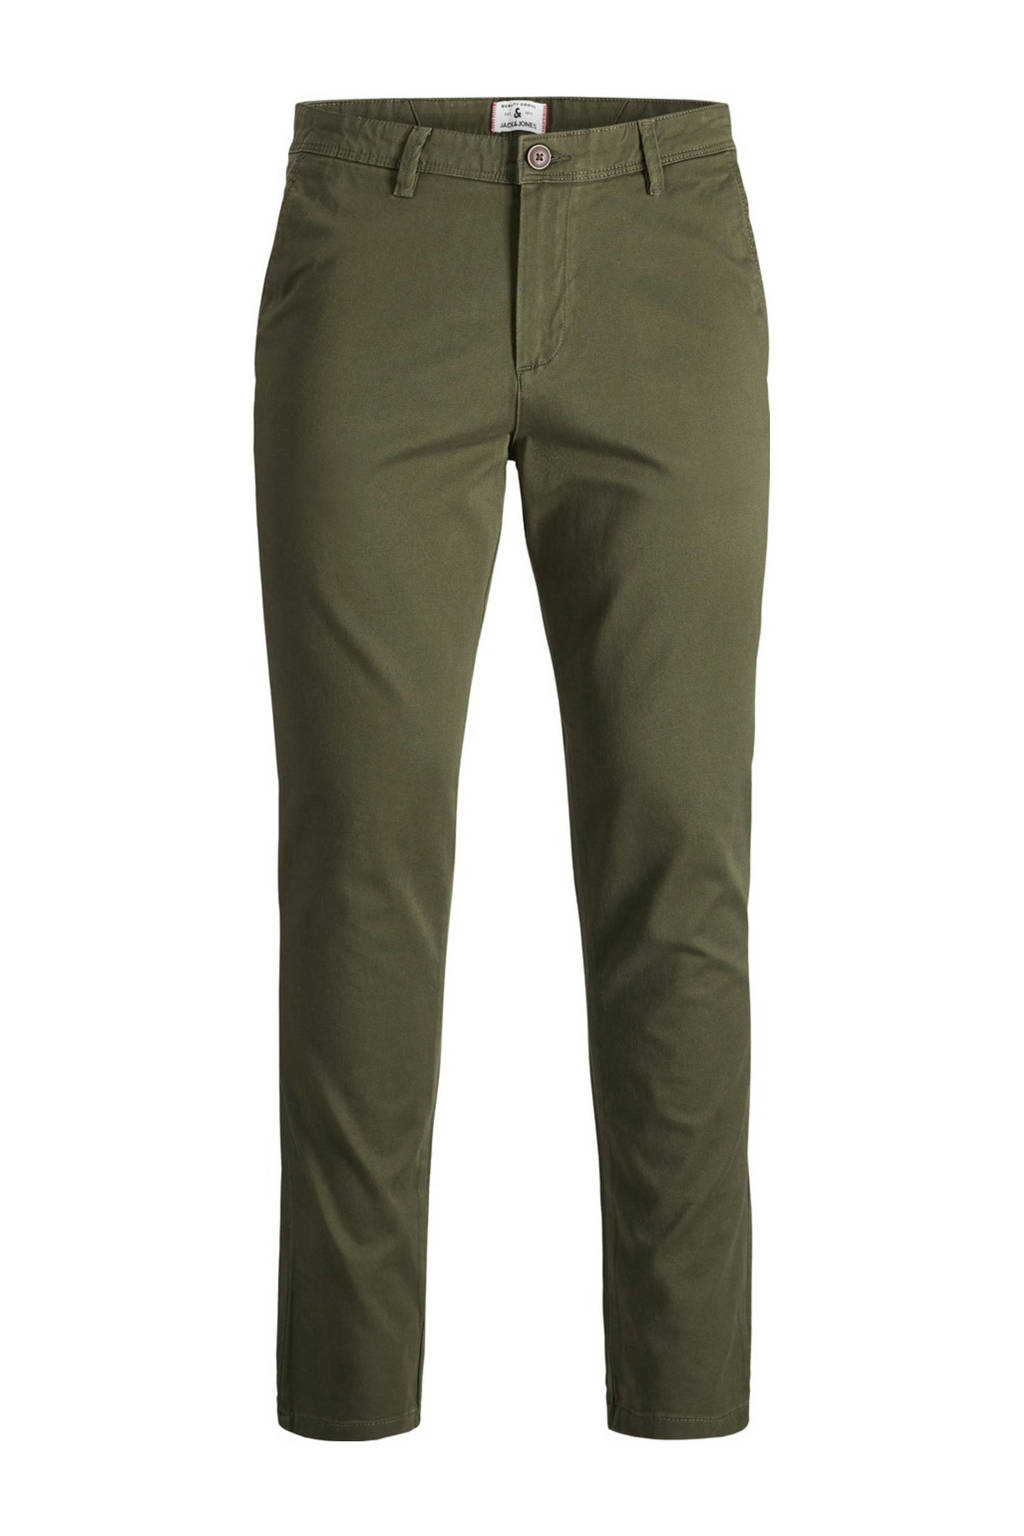 JACK & JONES JEANS INTELLIGENCE slim fit chino Marco legergroen, Legergroen